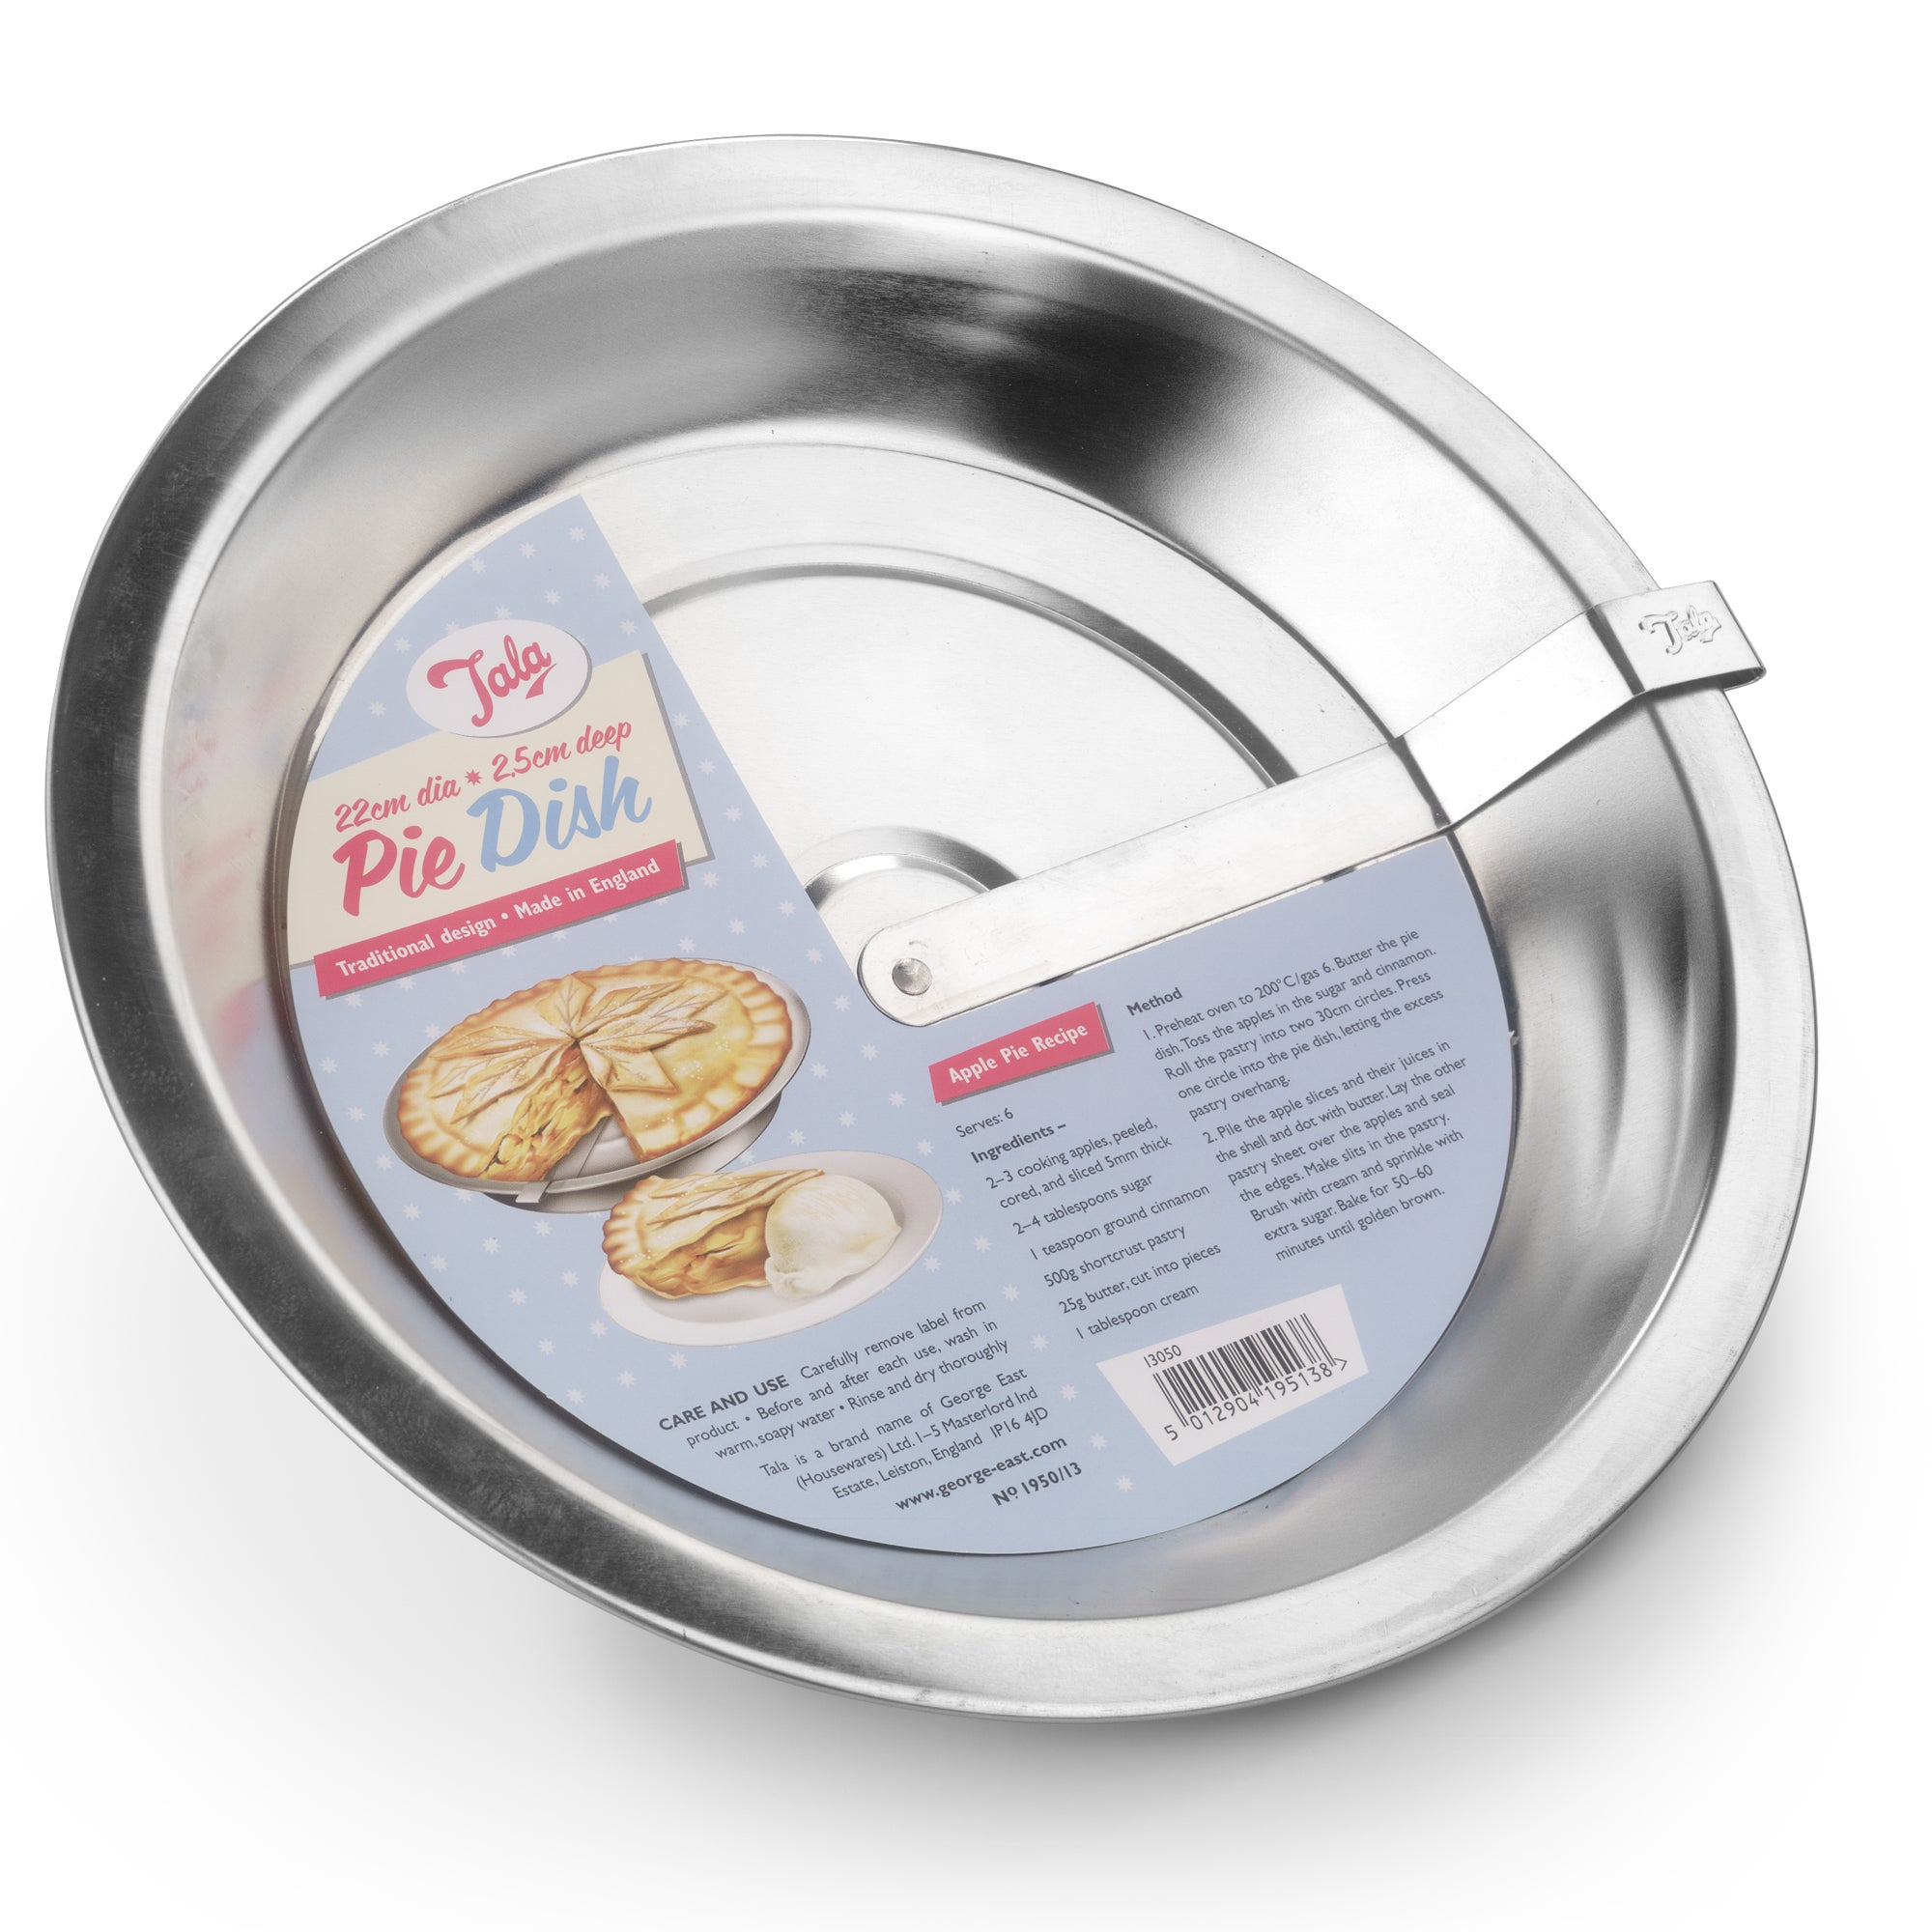 Tala Clean Cut Pie Pan